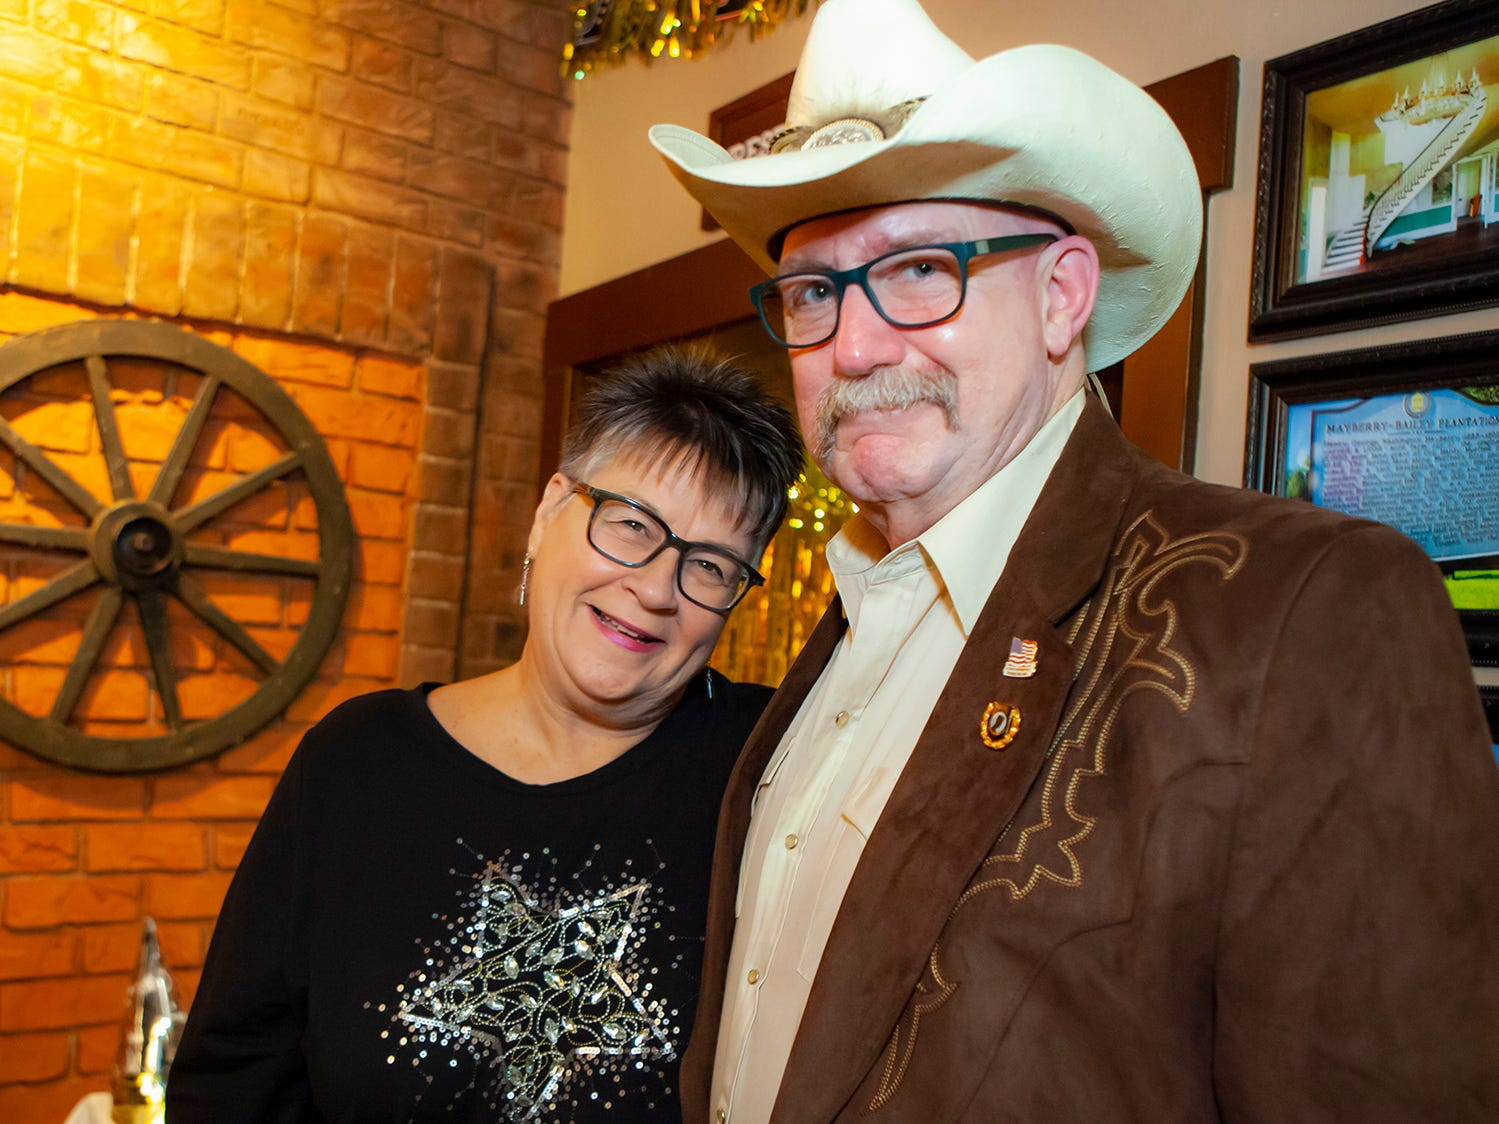 Kat and Dave Boehl at the New Year's party at Hank's Honky Tonk in Murfreesboro.